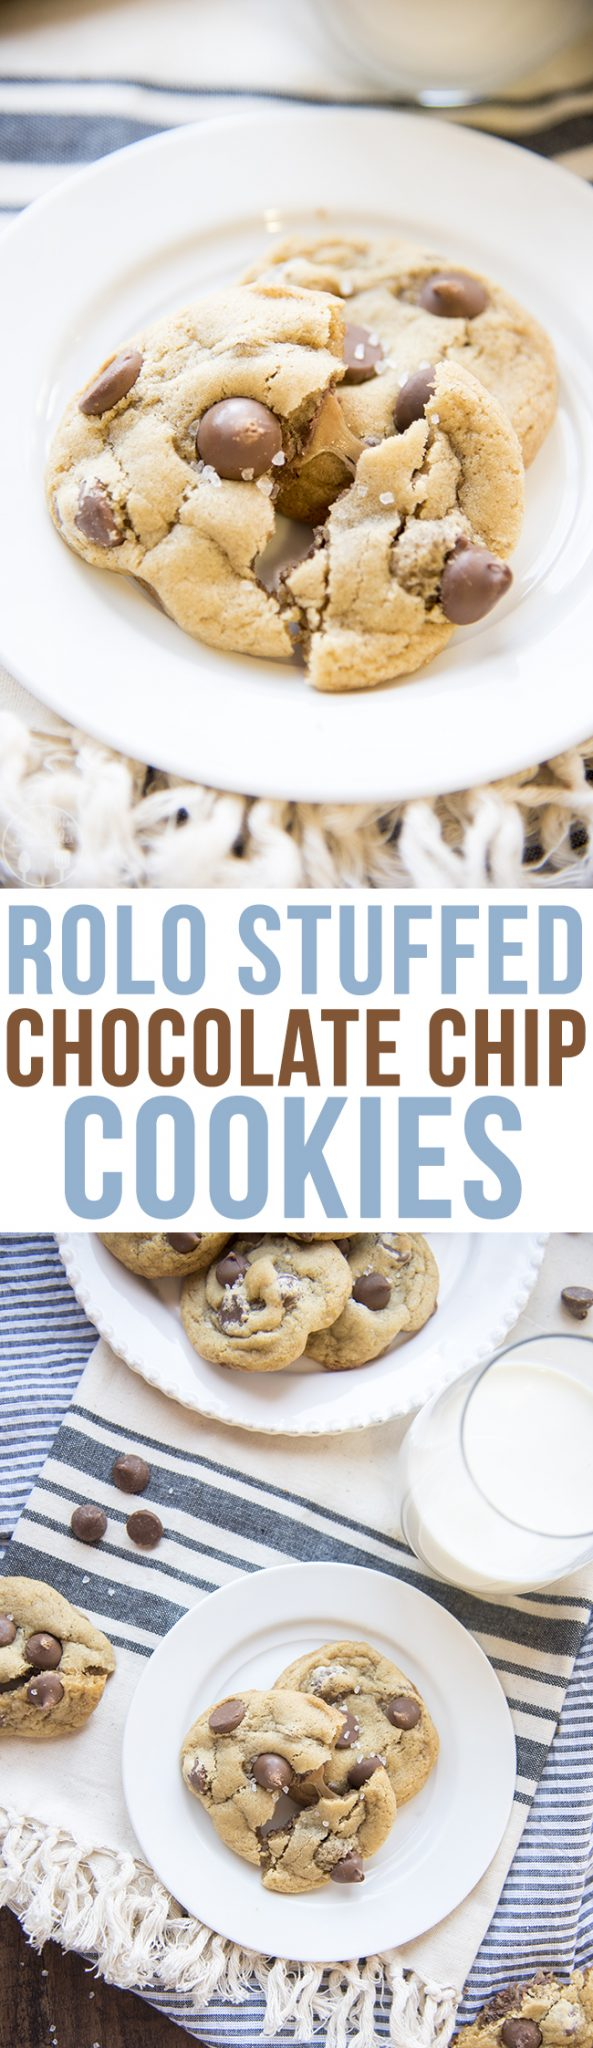 Rolo Stuffed Chocolate Chip Cookies - LMLDFood